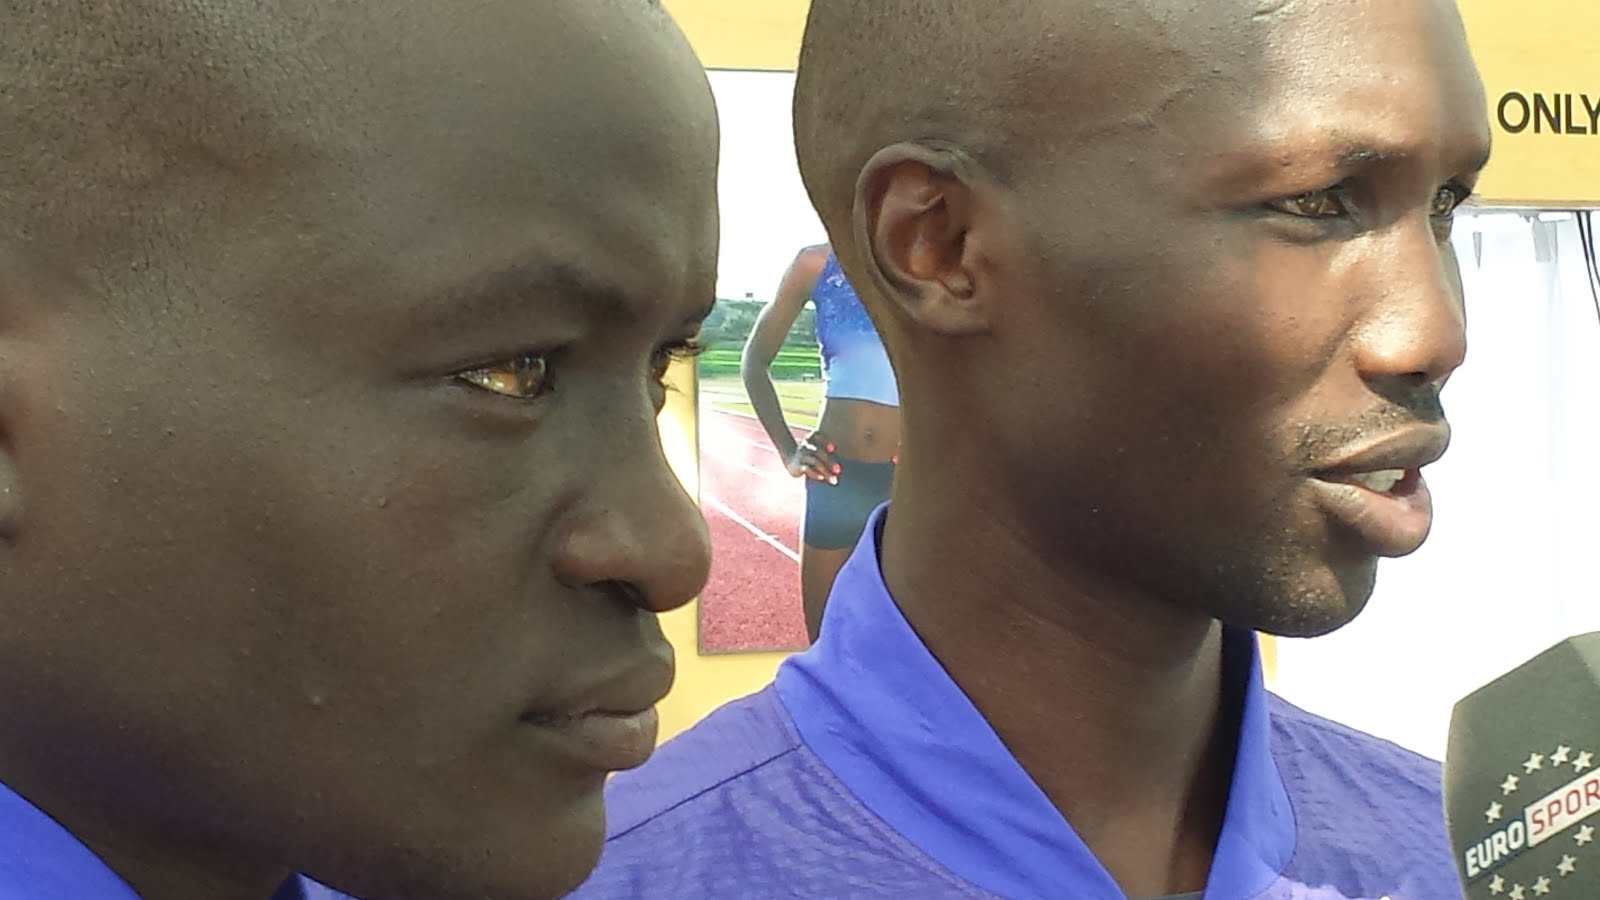 Dennis Kimetto and Wilson Kipsang